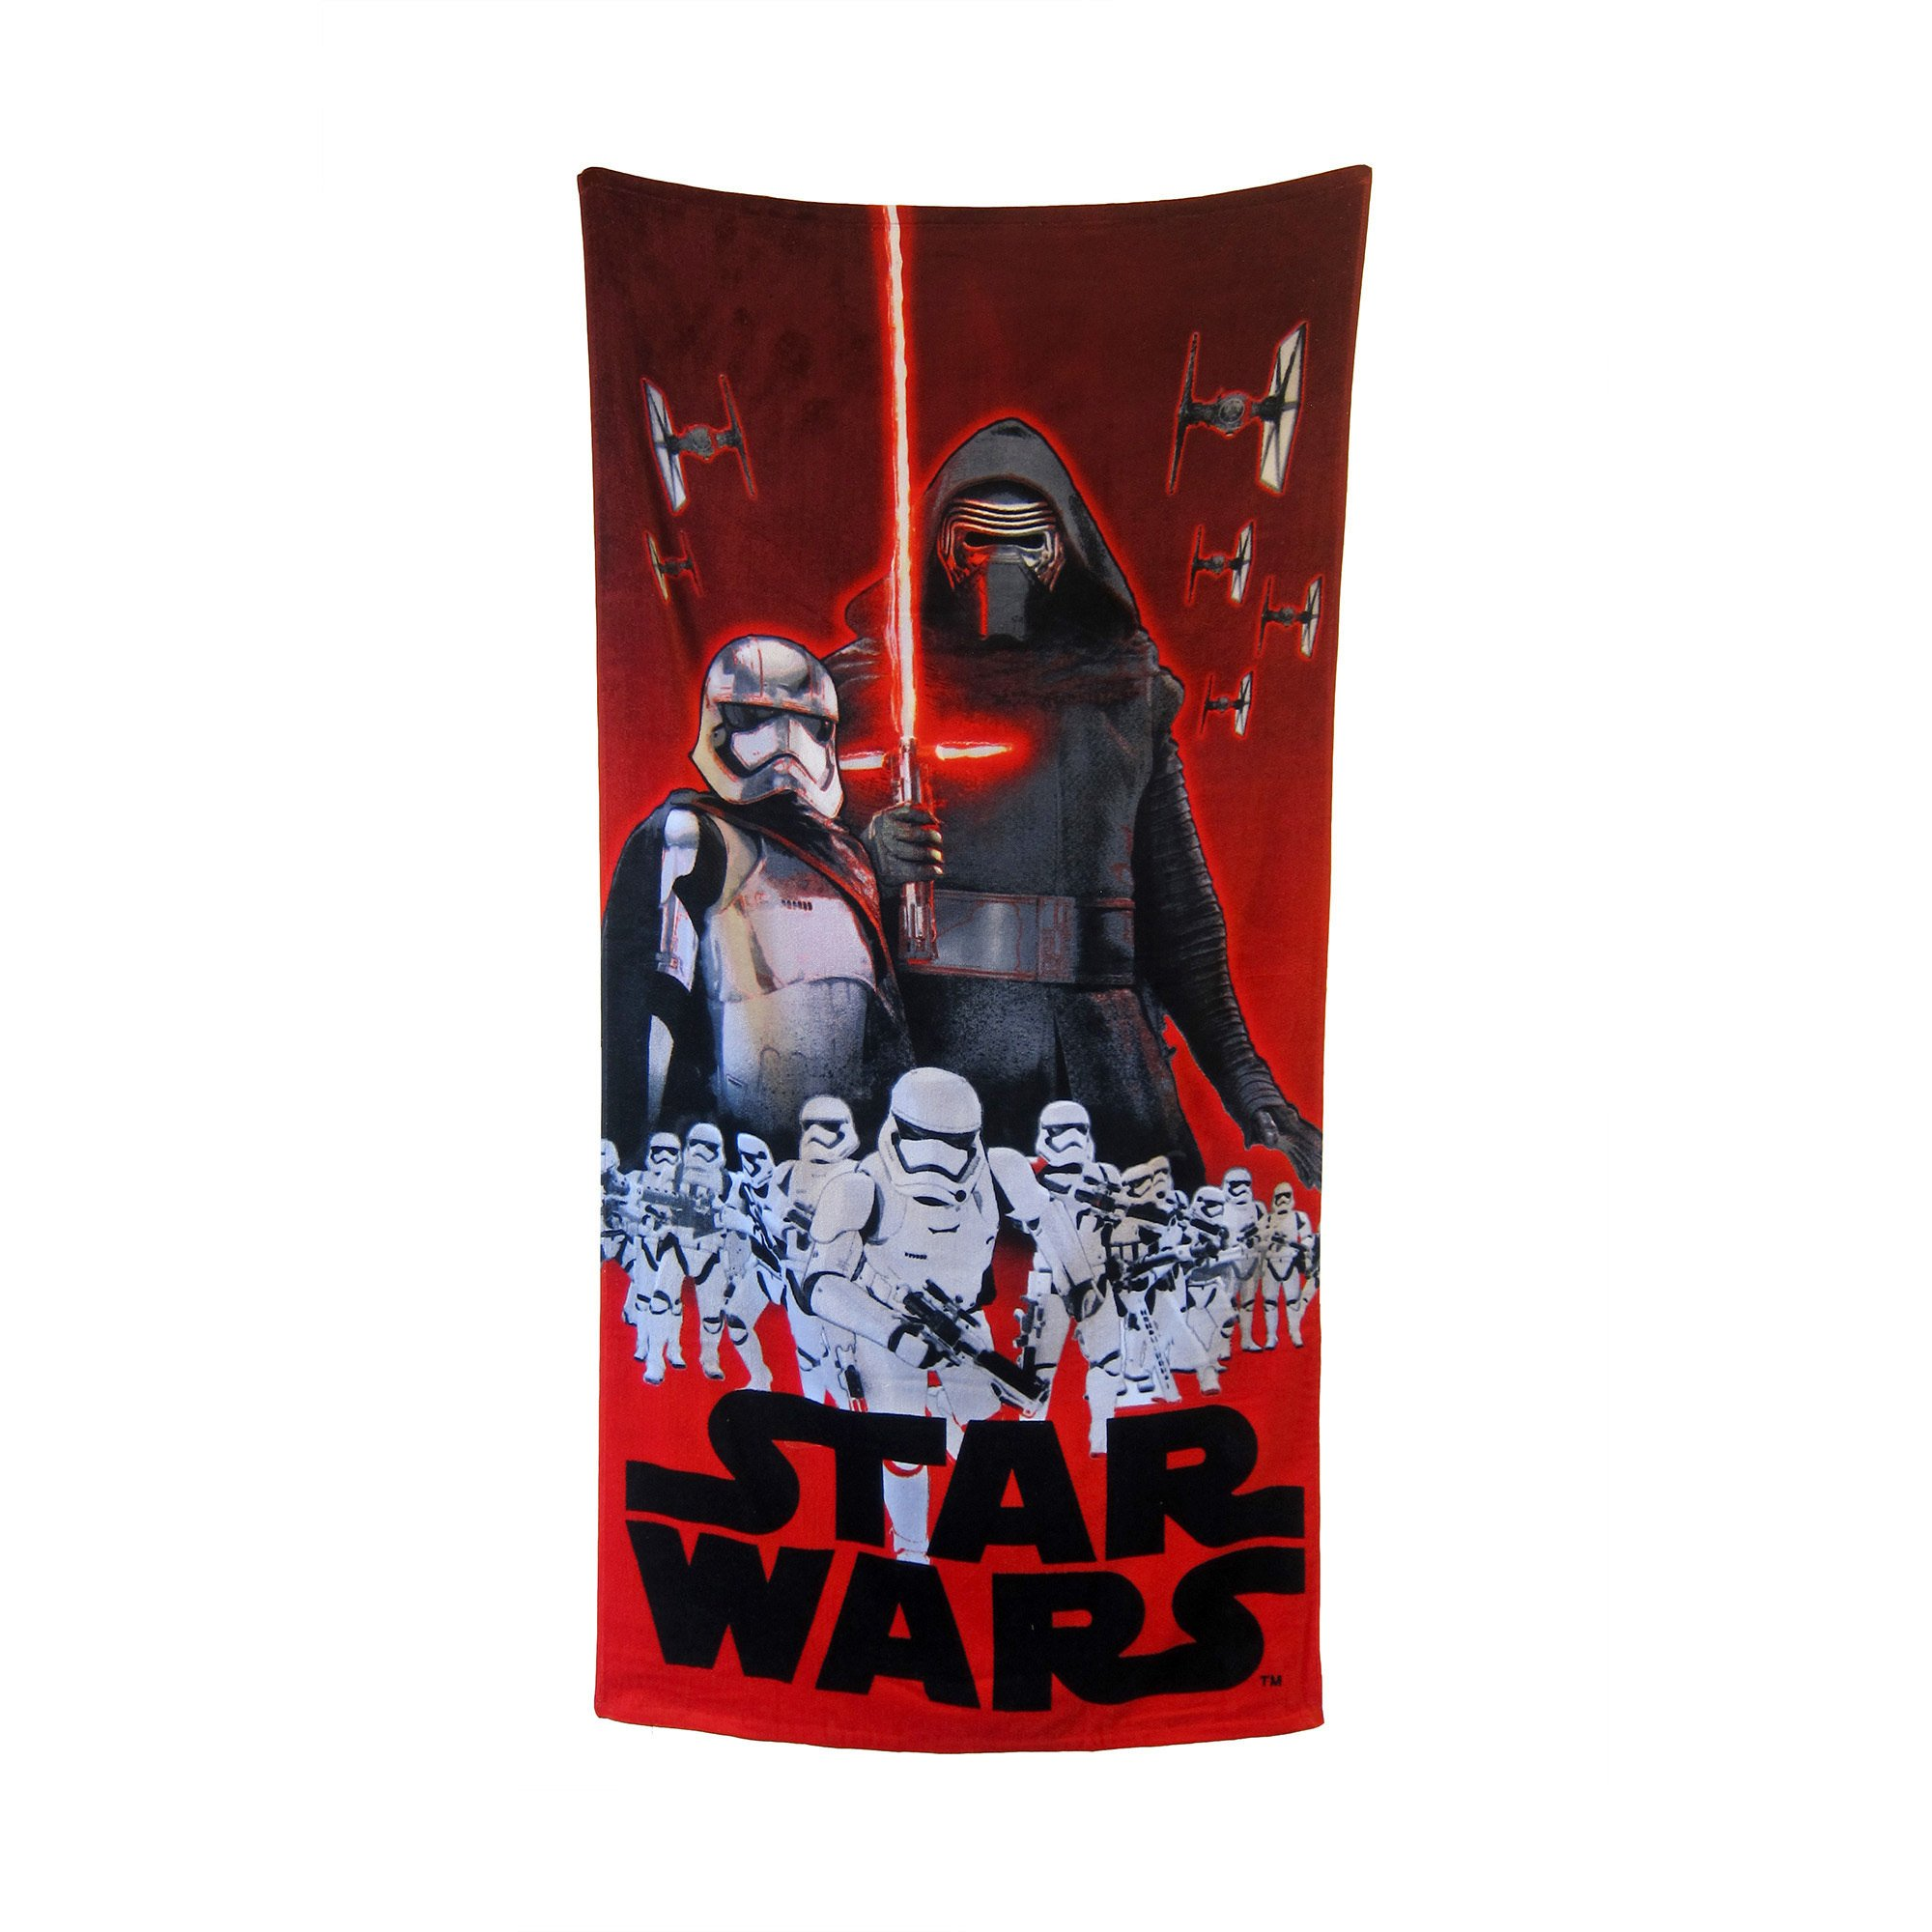 1 Piece Multi Star Wars Foes Of The Force 18 X 58 Inch Beach Towel, Red Black Blue White Disney Movie Character Kylo Ren, Captain Phasma Stormtroopers Colorful Absorbent Pool Towel, Cotton